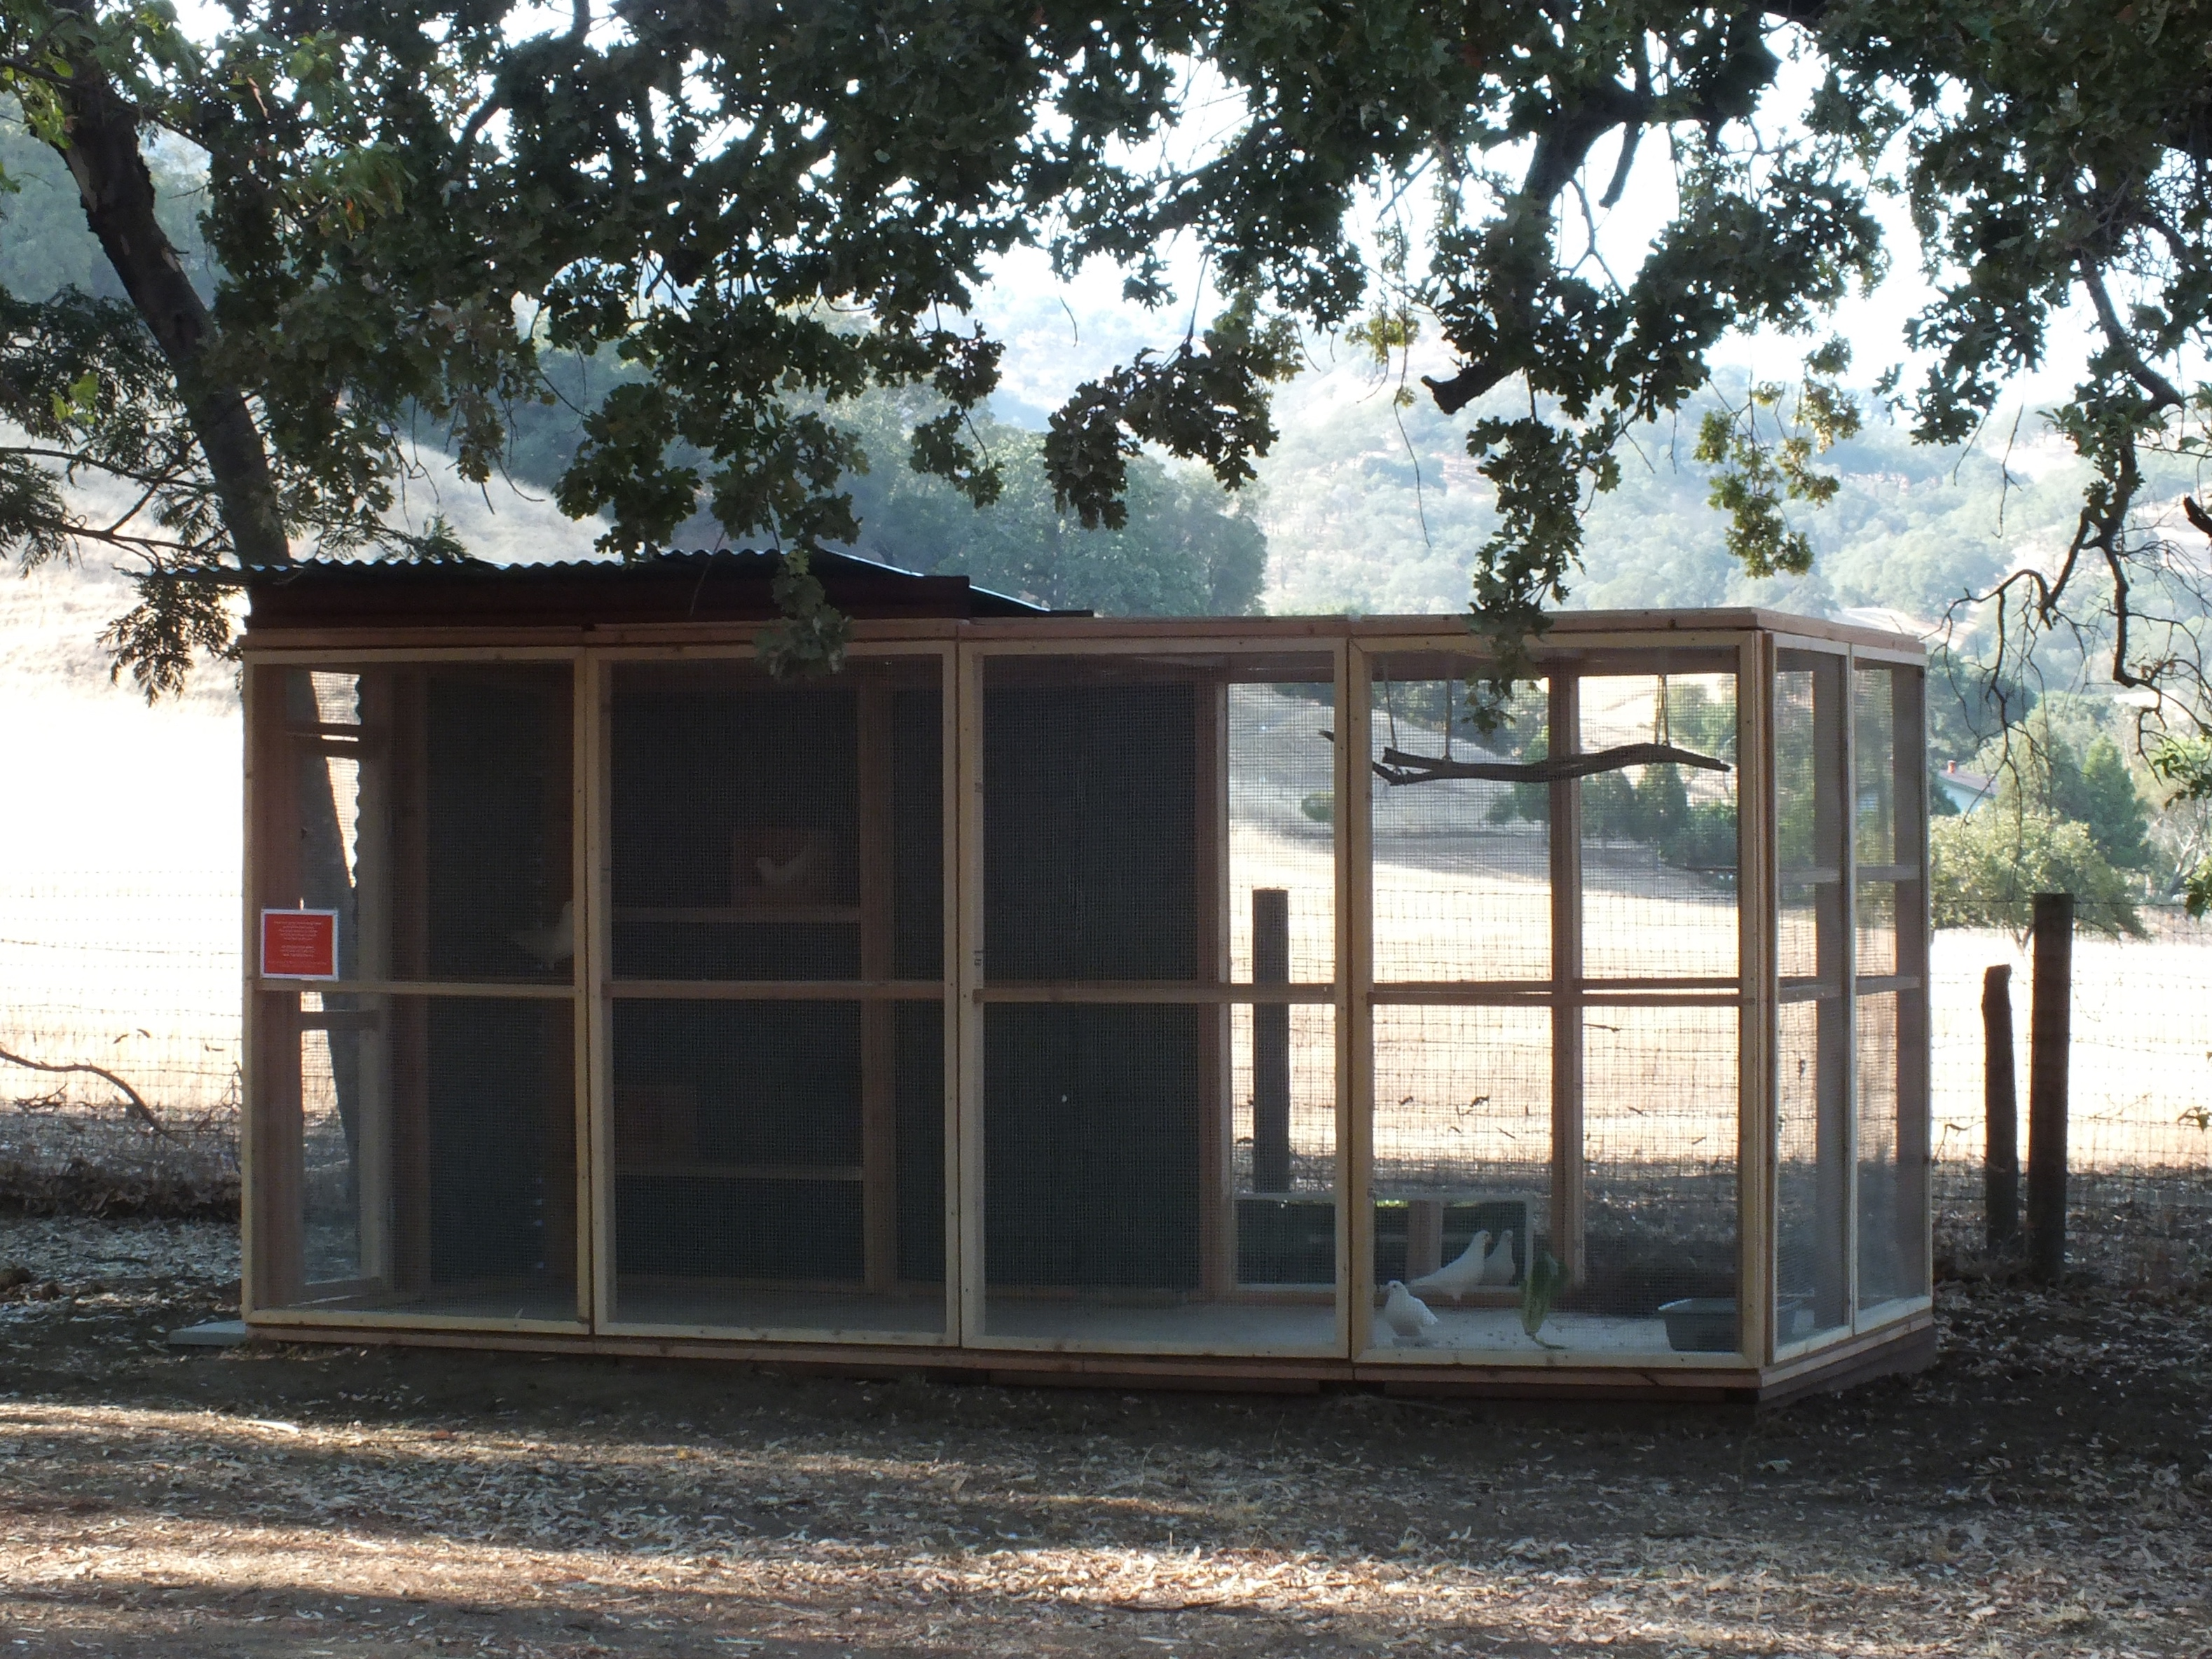 Finished avairy is half sheltered, half open